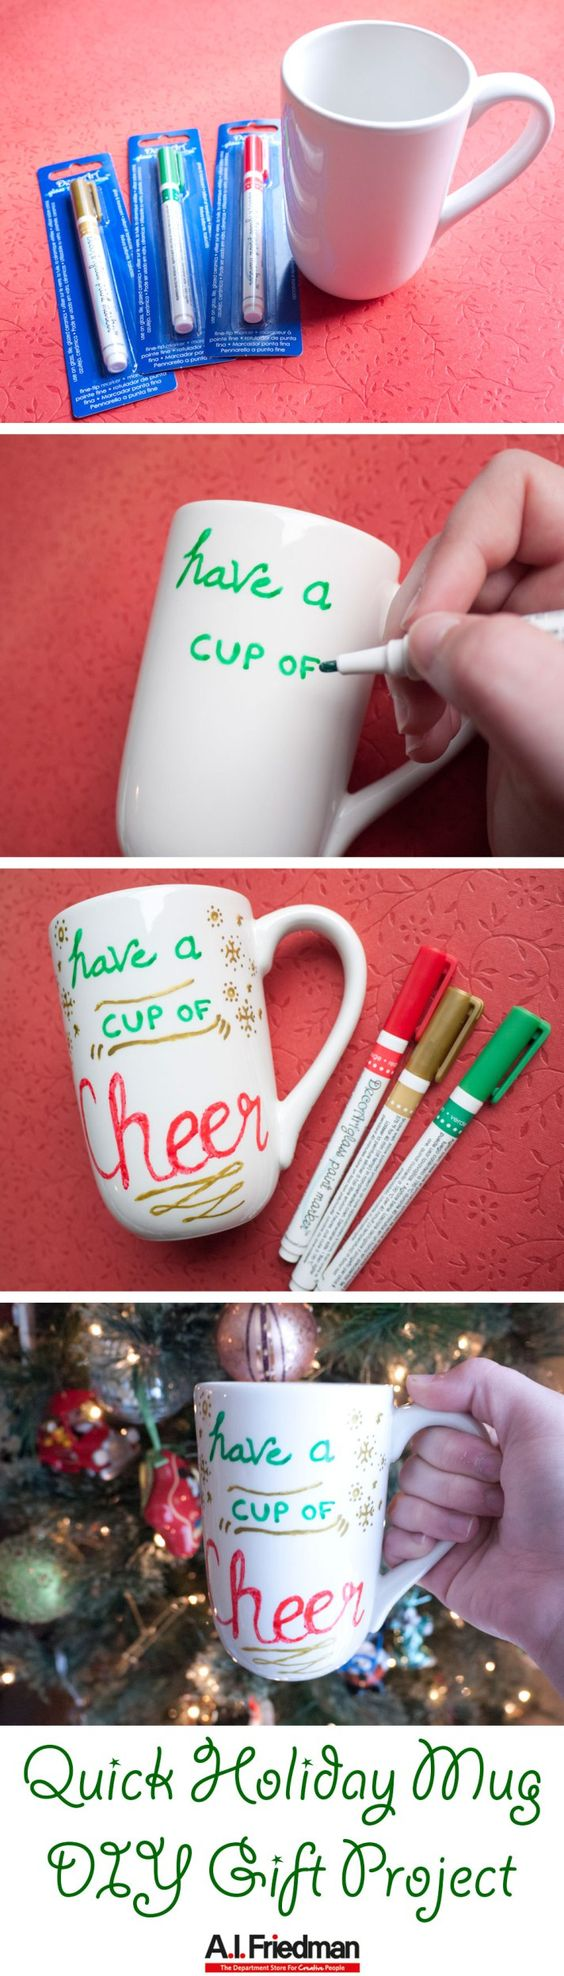 Quick Holiday Mug DIY Gift Project  - Super easy and fast gift to make when you are down to the wire with your handmade gift making! #diy #handmade #holiday #gift #christmas #mug #markers #glass #quick